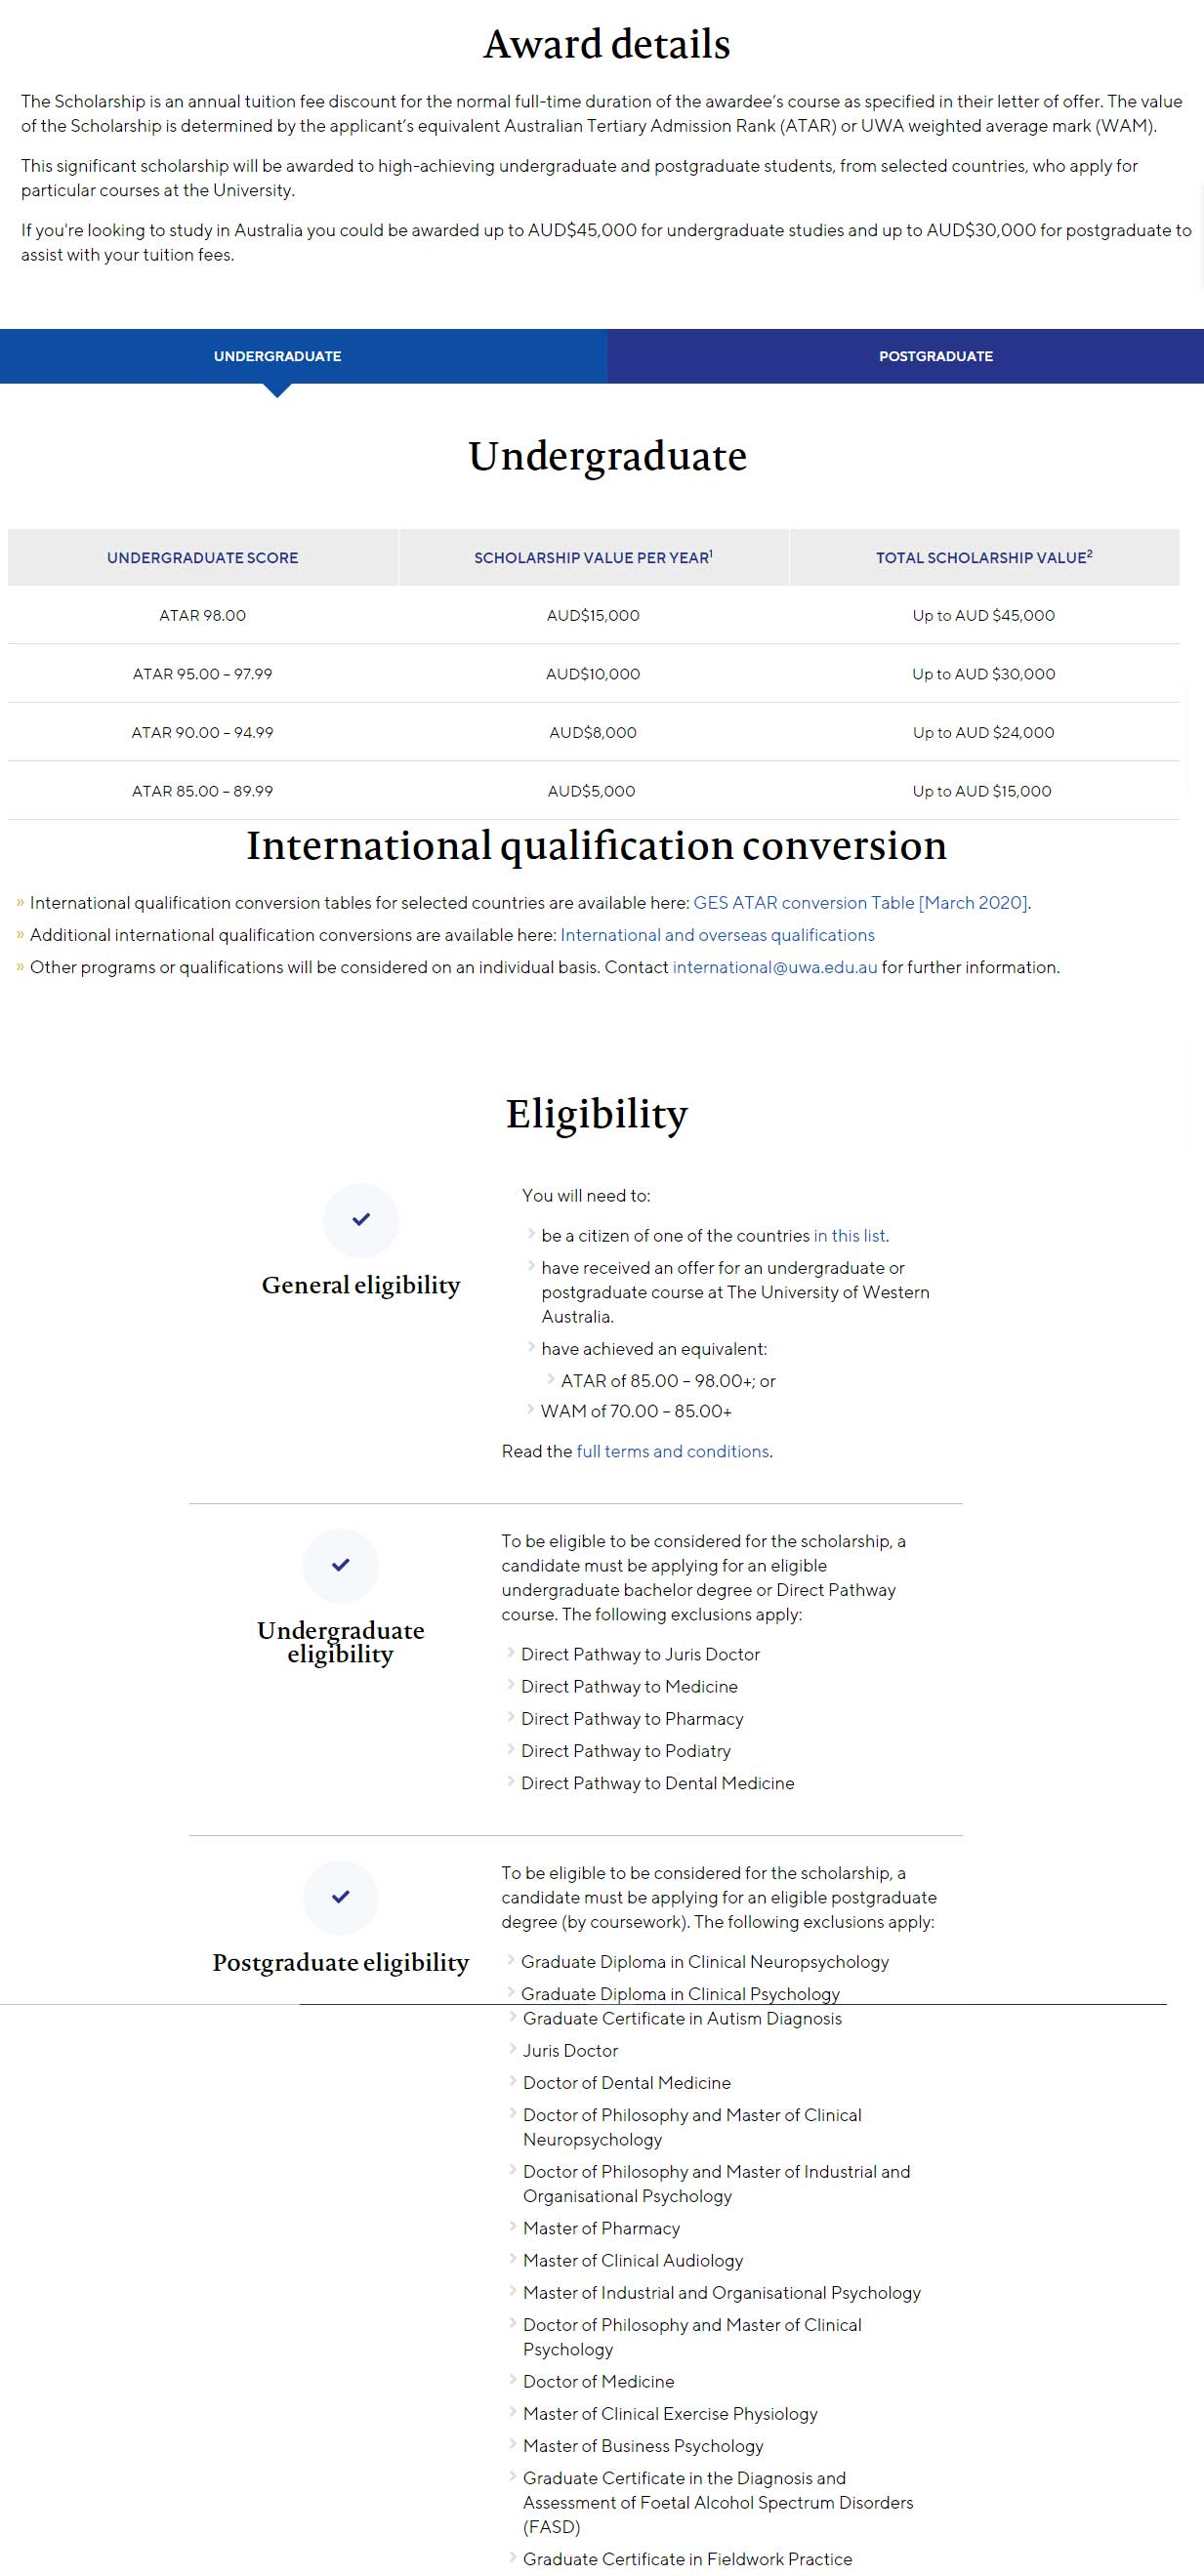 https://ishallwin.com/Content/ScholarshipImages/The-Global-Excellence-Scholarship-at-the-University-of-Western-Australia.jpg